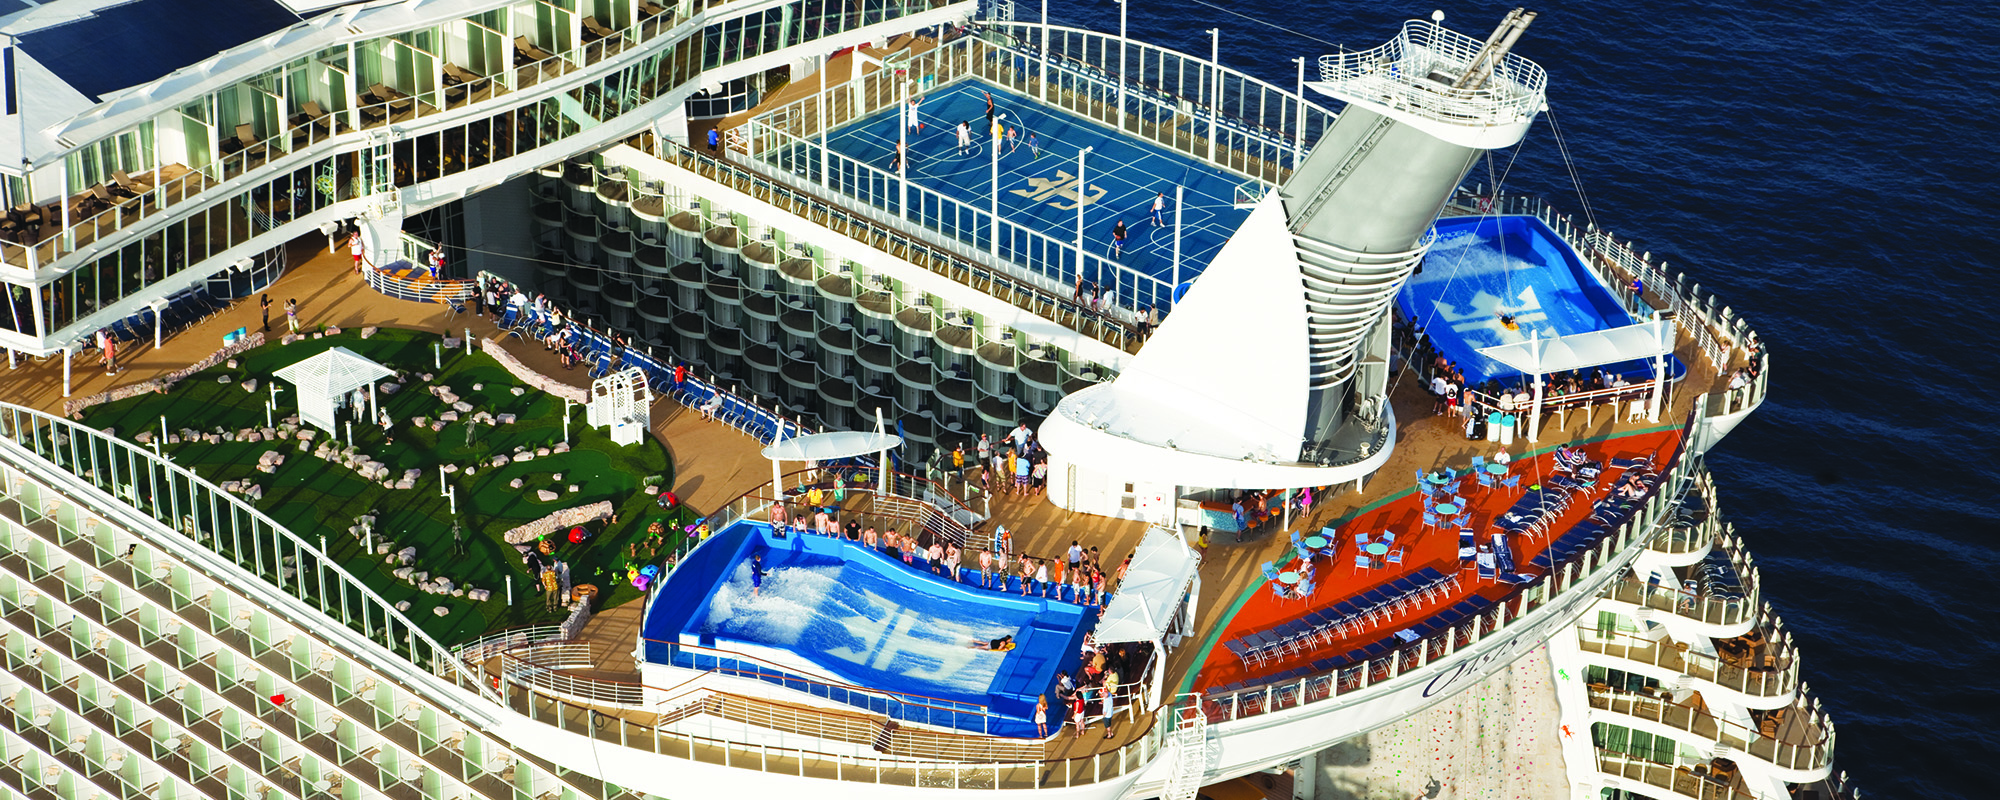 The top of the Royal Caribbean cruise with two flowriders on it